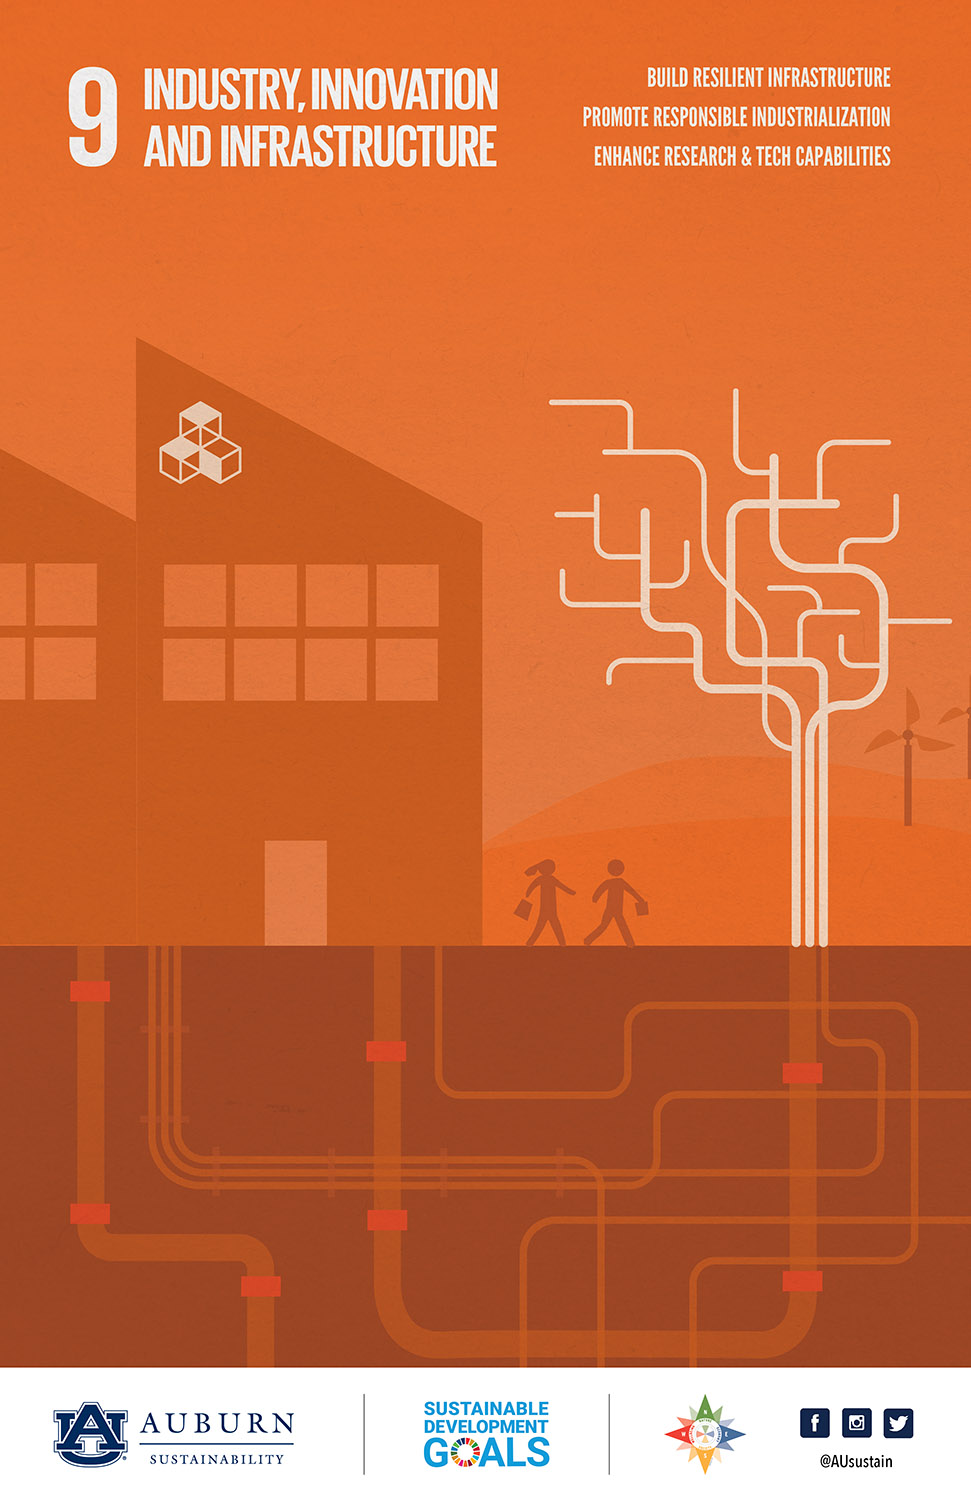 Sustainable Development Goal 9 Poster illustration: Industry, Innovation, and Infrastructure. Goals include: build resilient infrastructure, promote responsible industrialization, and enhance research & tech capabilities.